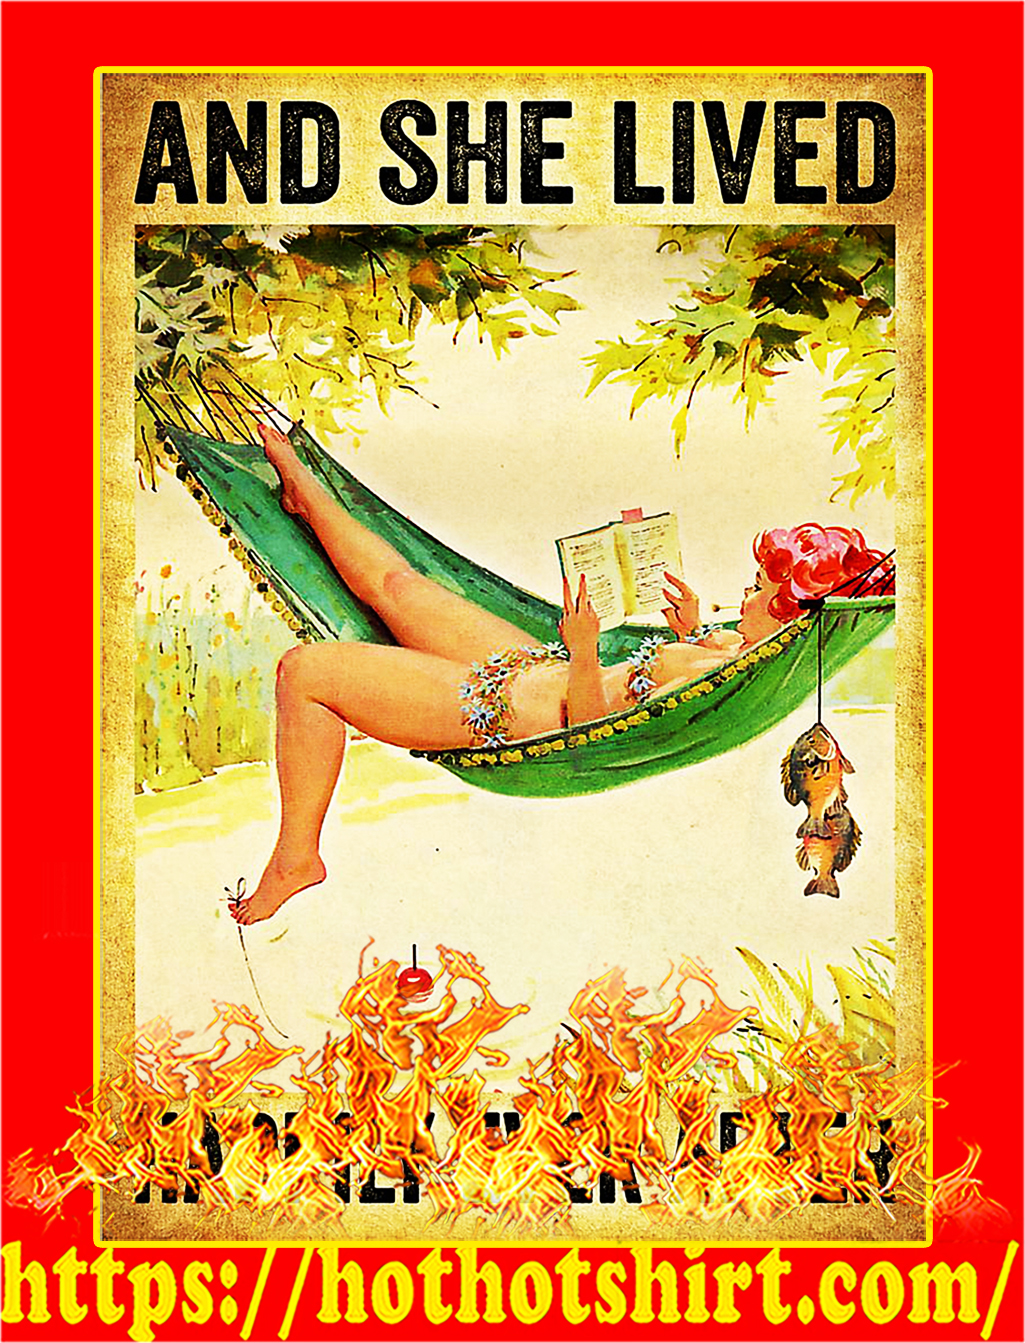 Fishing And she lived happily ever after poster - A3